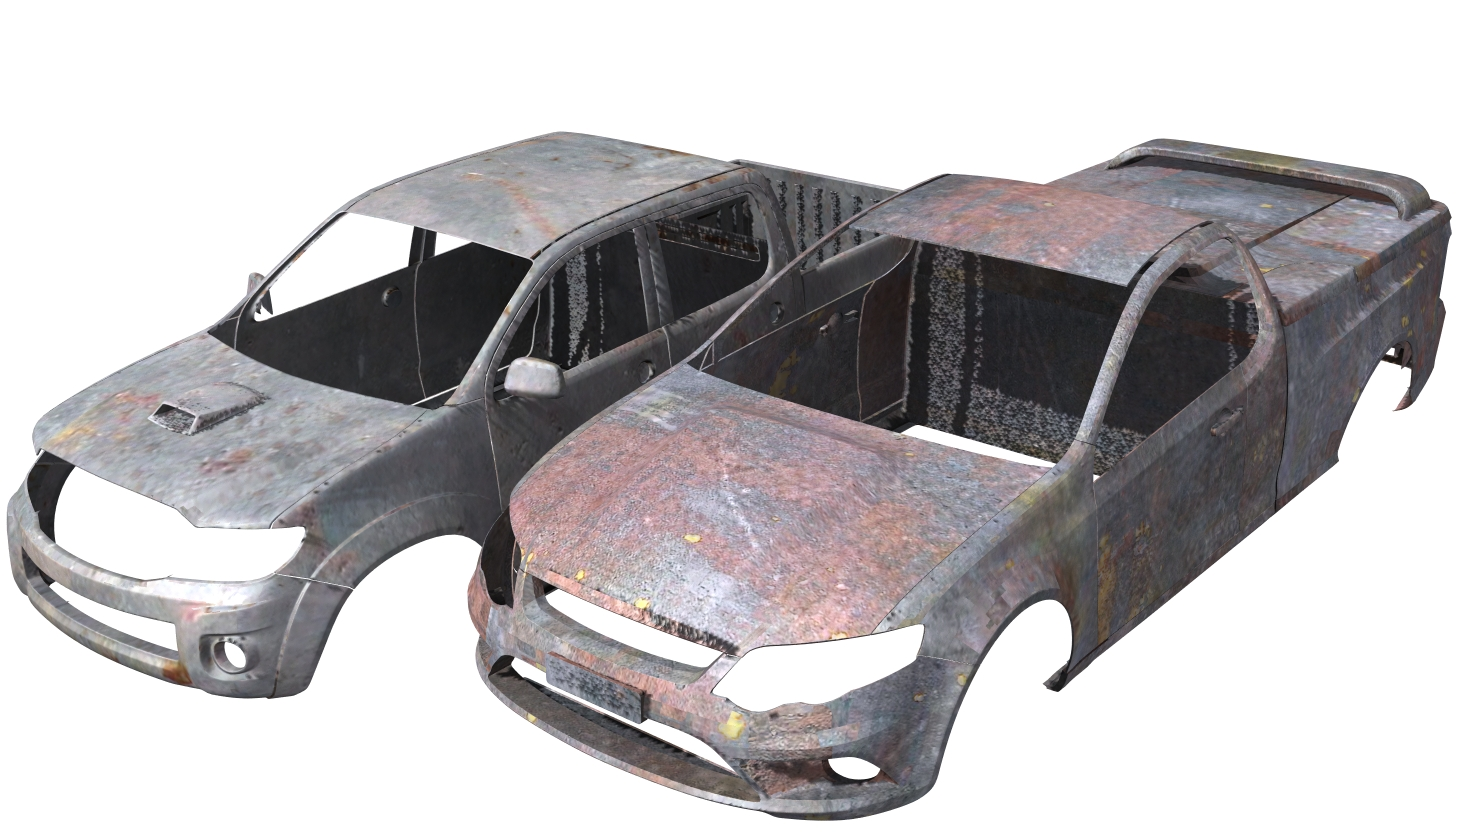 Hilux and Falcon Rusty Vehicle Body